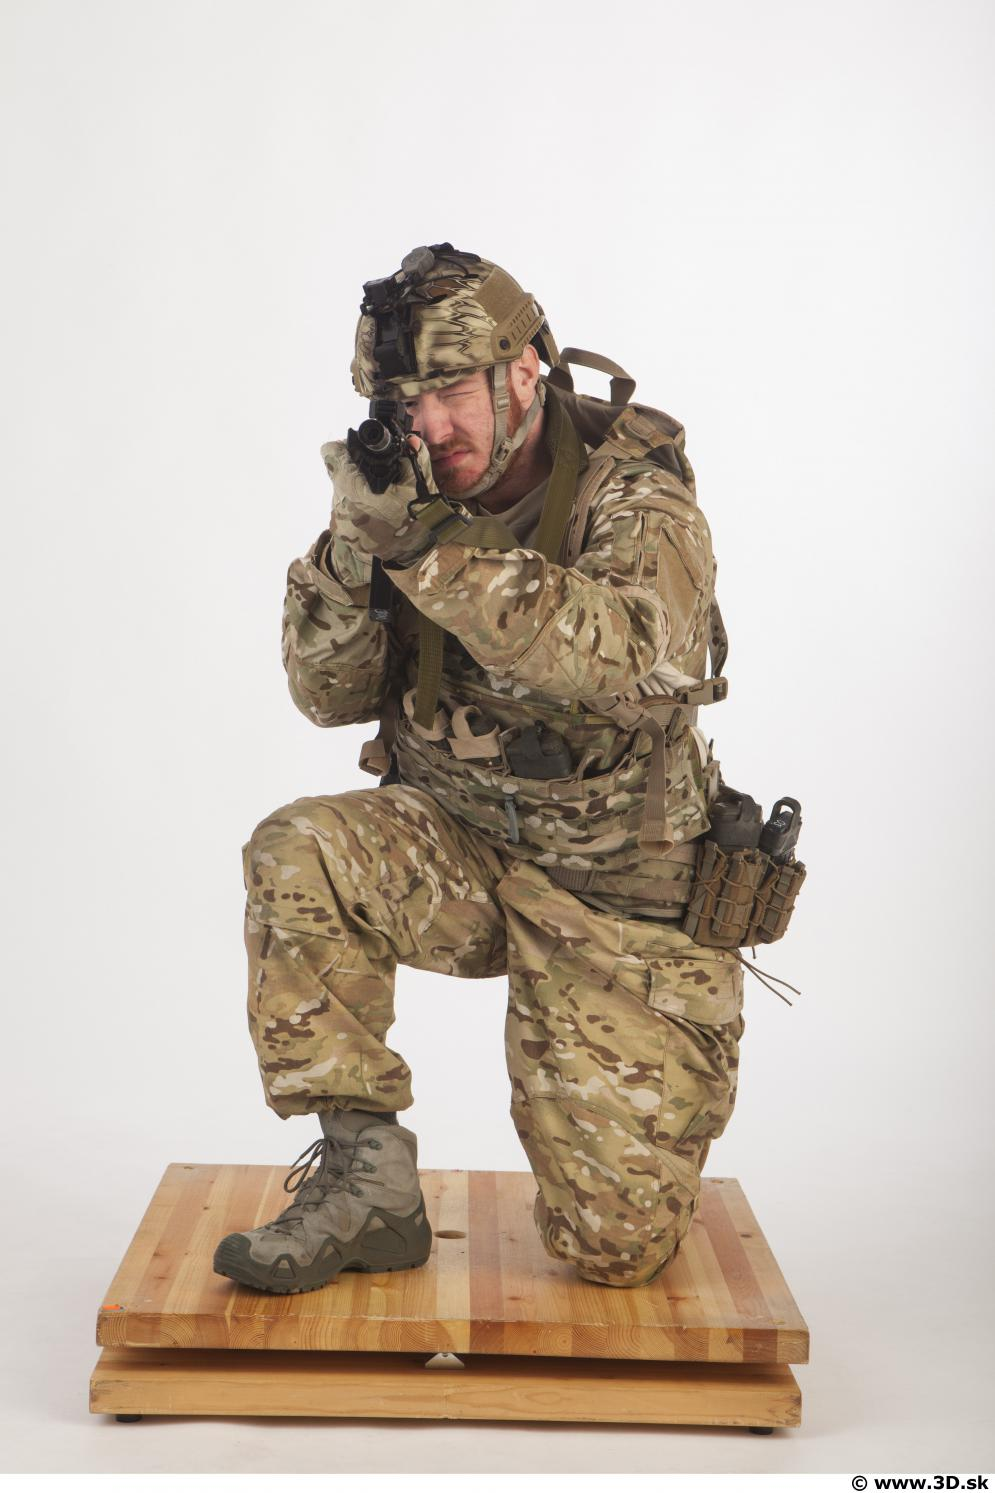 Image from Free Samples / May 2018 - 0072_soldier_in_american_army_military_uniform_0072.jpg